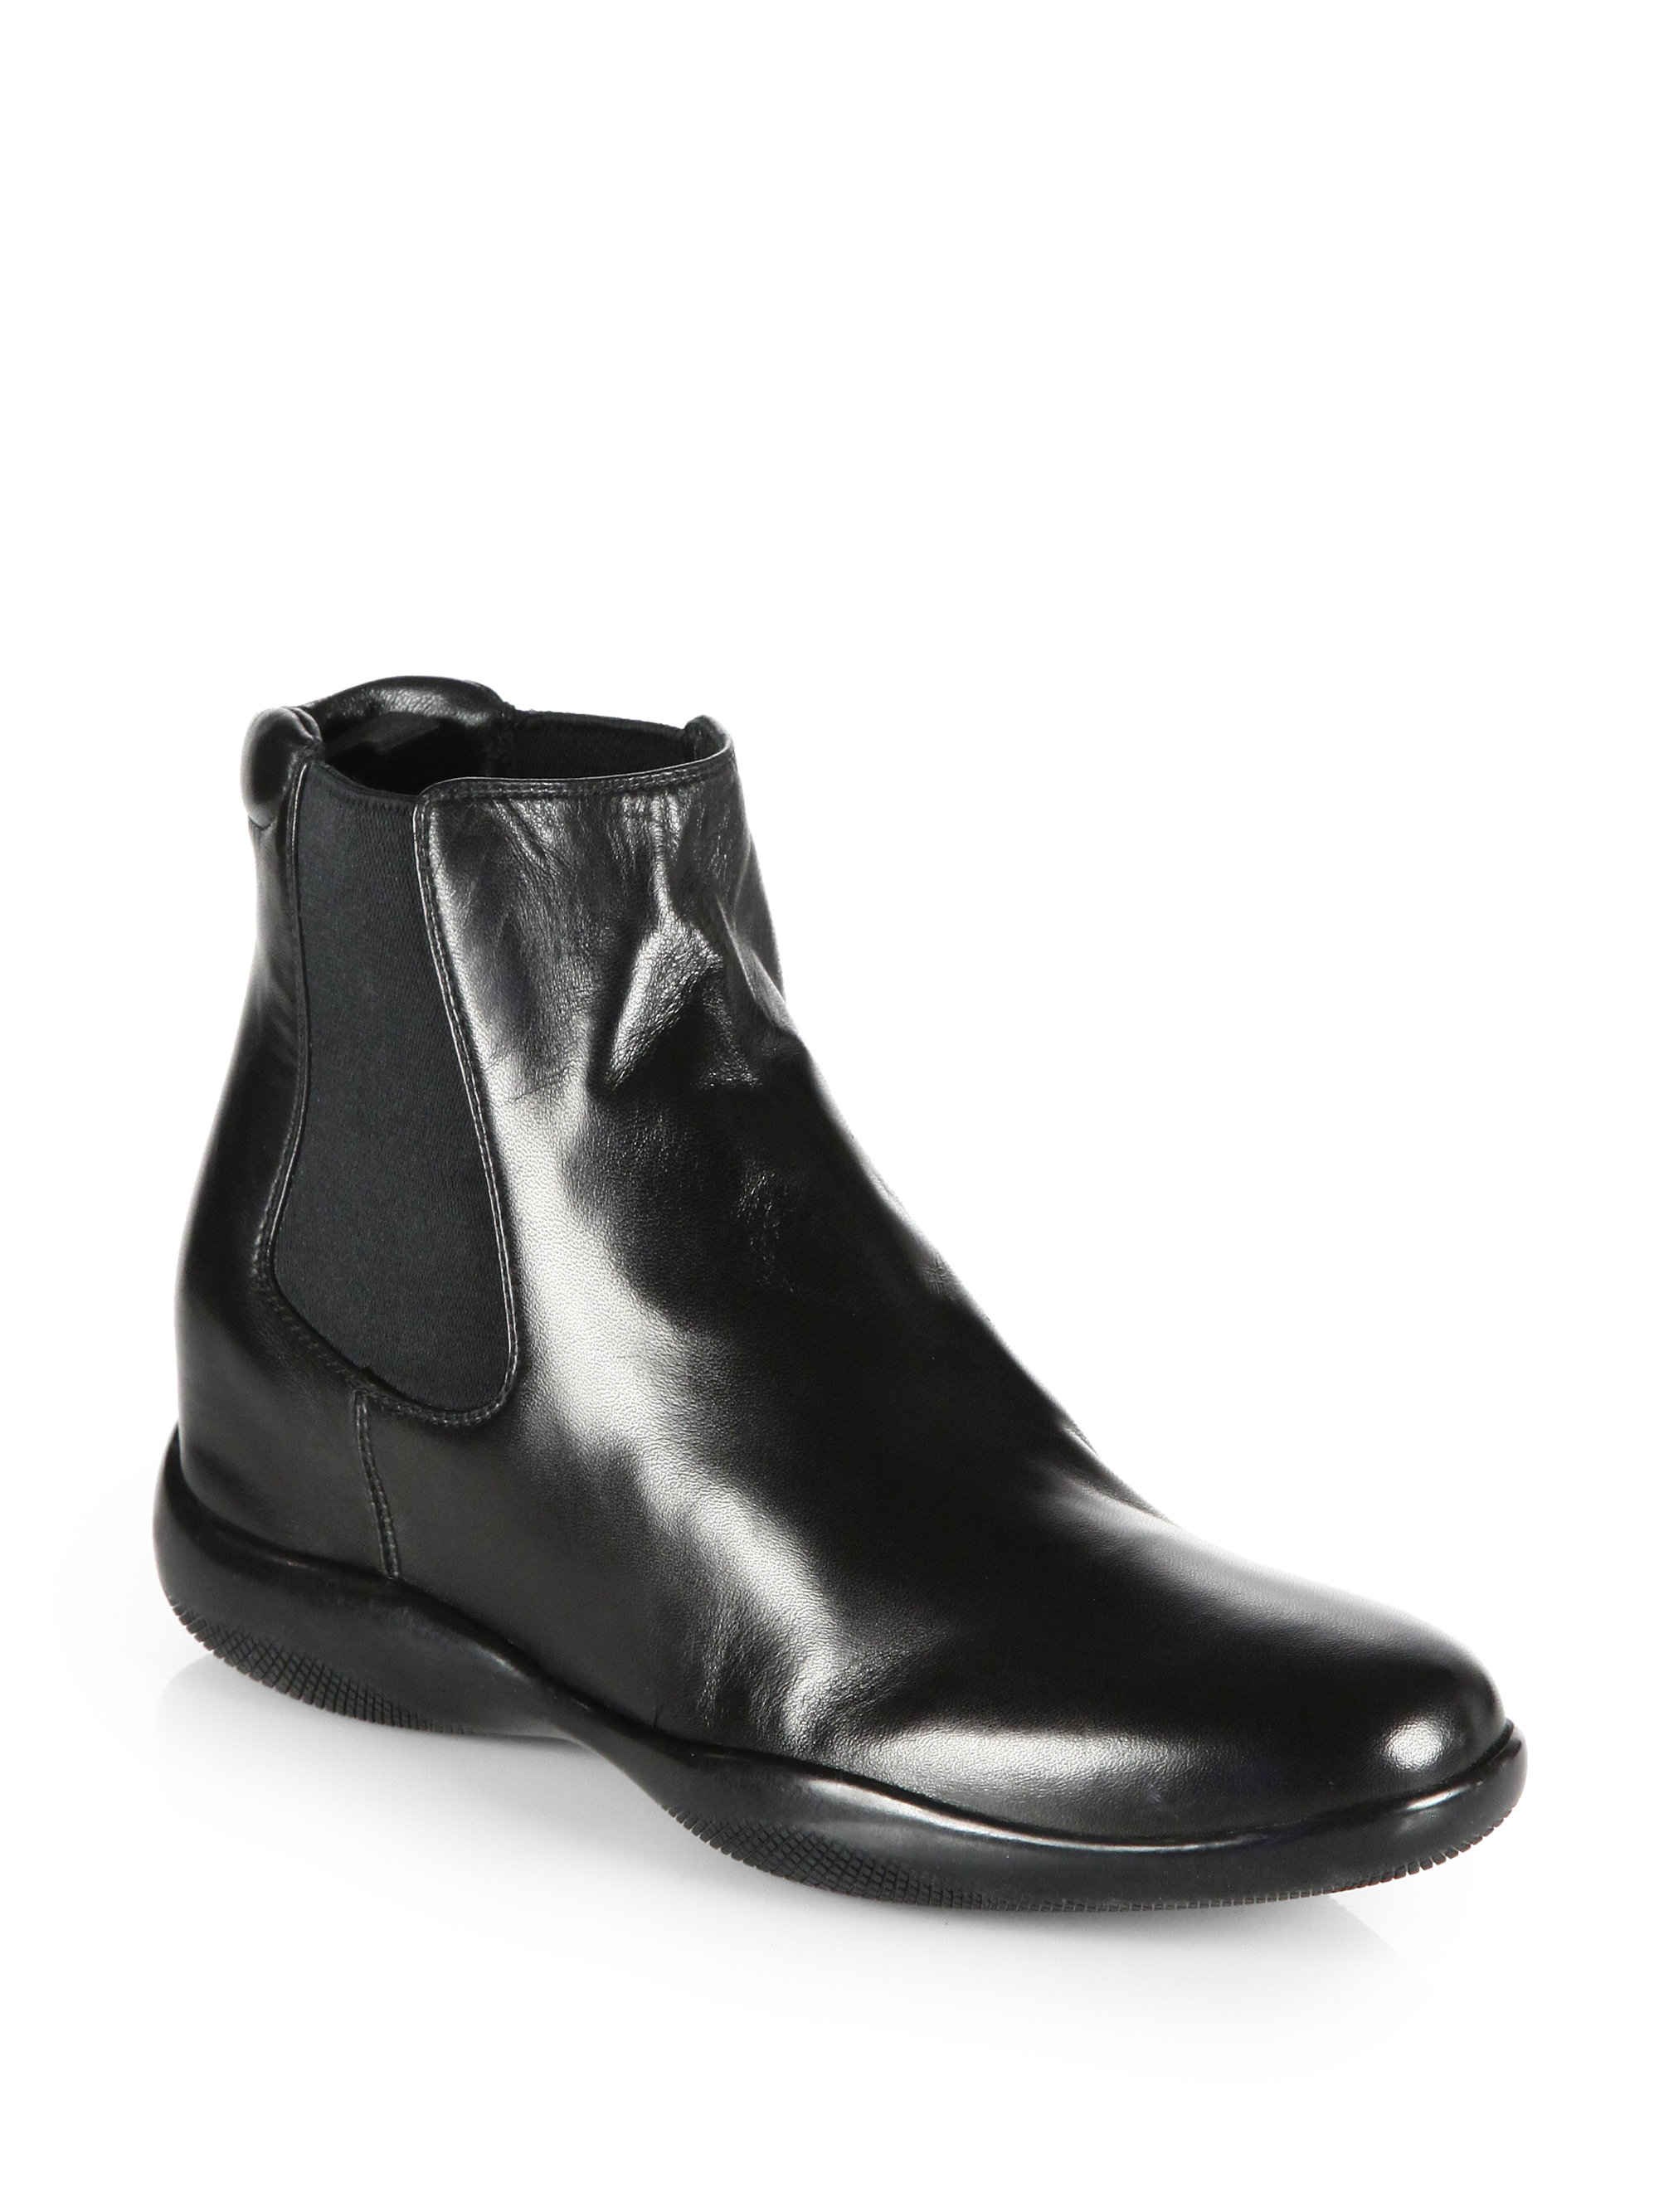 prada leather ankle boots in black nero black lyst